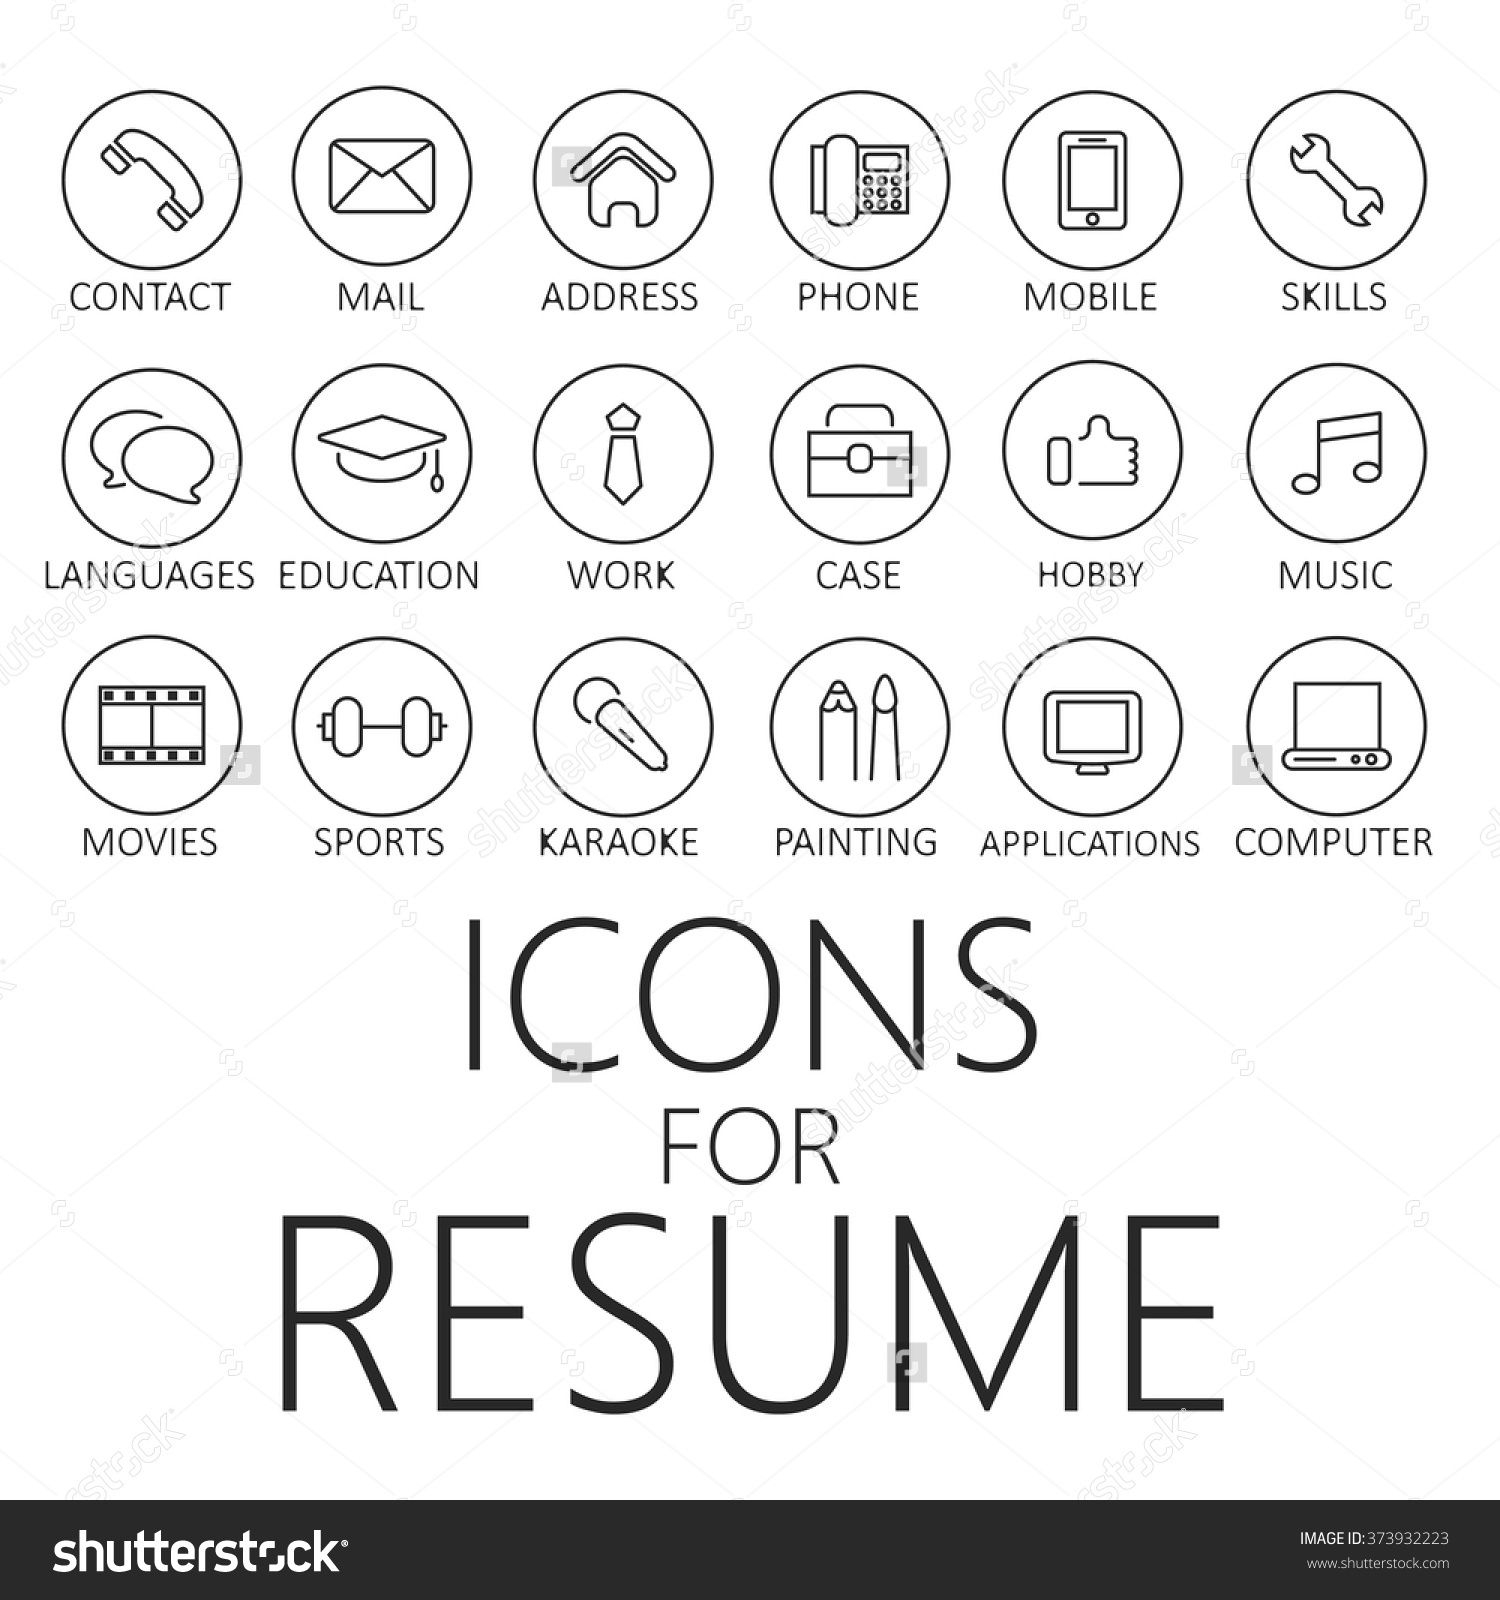 Thin Line Icons Pack For CV Resume Job Cvicon Pinterest